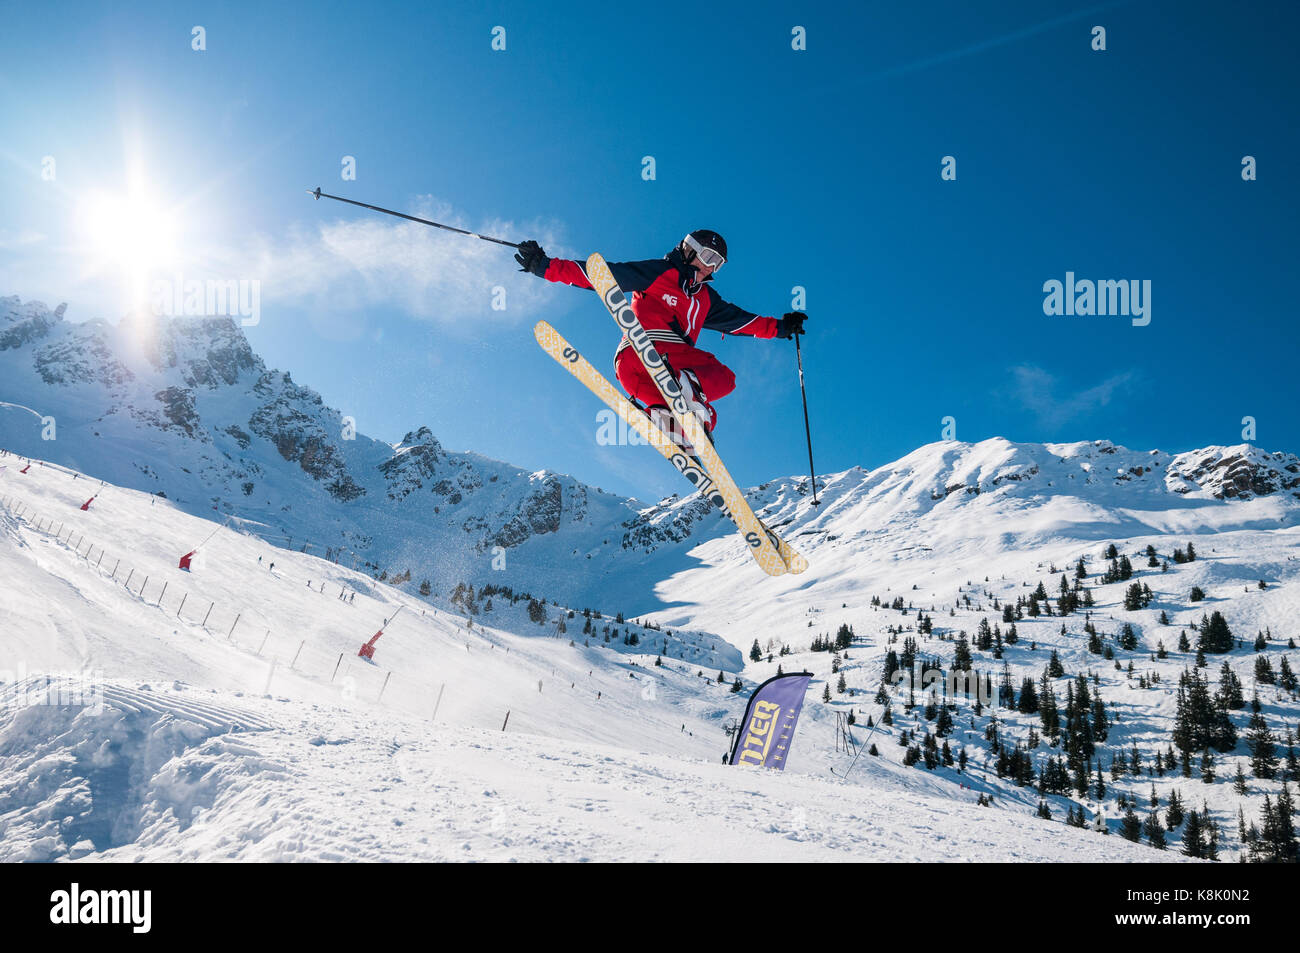 skier-jumping-off-snow-ramp-in-to-the-ai